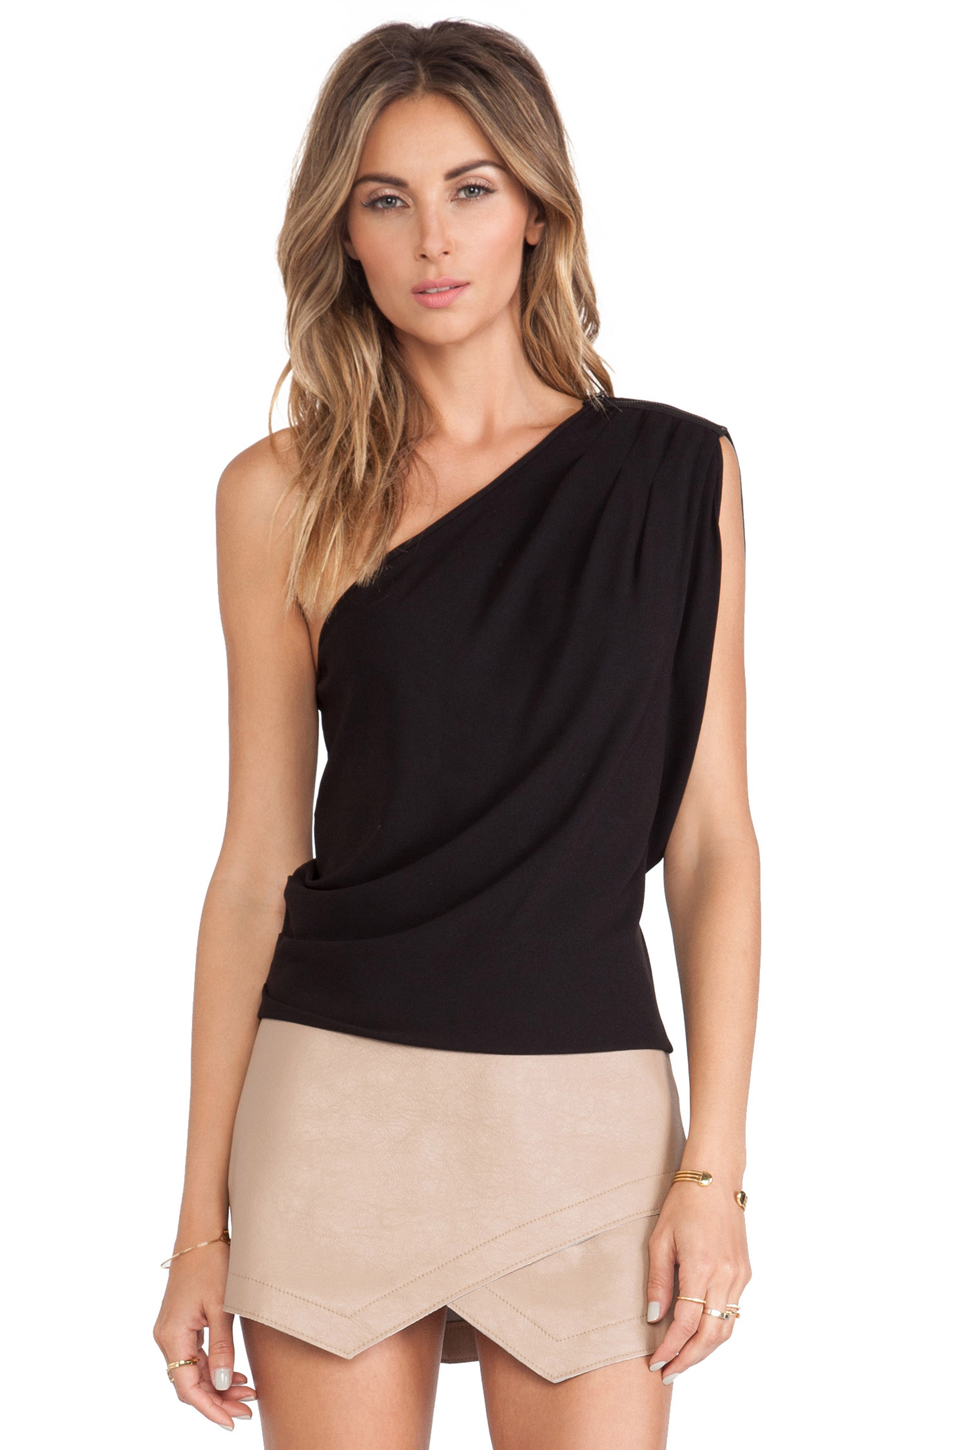 Women's One Shoulder Shirt 3/4 Sleeve Knot Front Tunic Tops. from $ 10 99 Prime. out of 5 stars 7. iGENJUN. Women's Dolman Sleeve Off The Shoulder Sweater Shirt Tops. from $ 24 99 Prime. out of 5 stars KAKALOT. Women's Sexy One Shoulder Bandage Sleeveless Crop Tank Top. from $ .